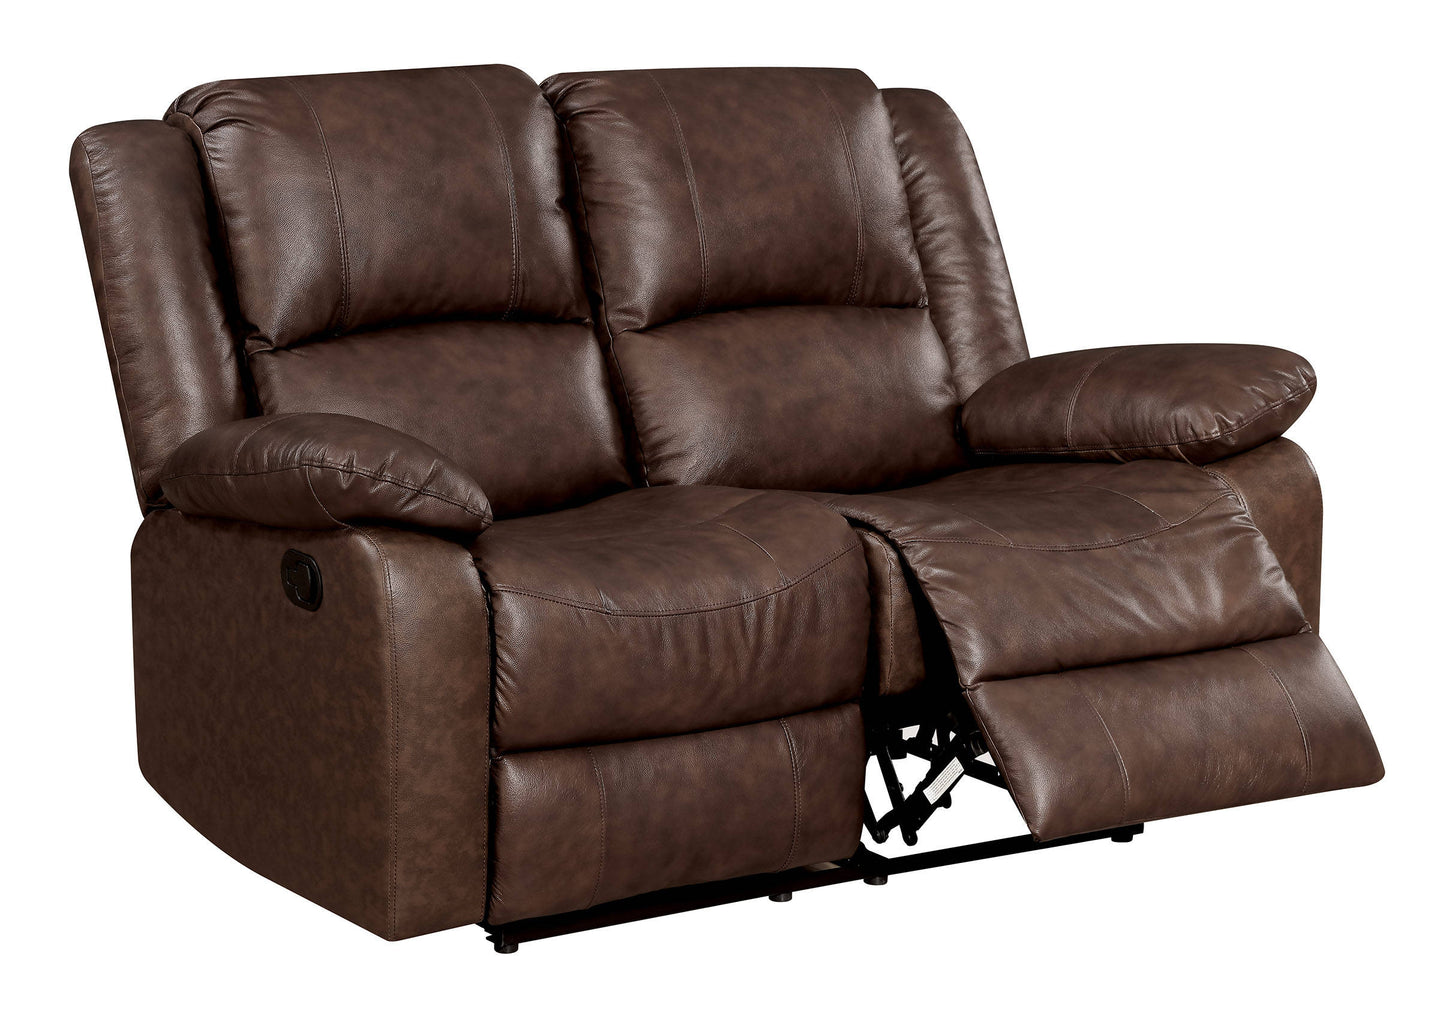 Furniture Of America CM6293-LV Kris Brown Leather Recliner Love Seat